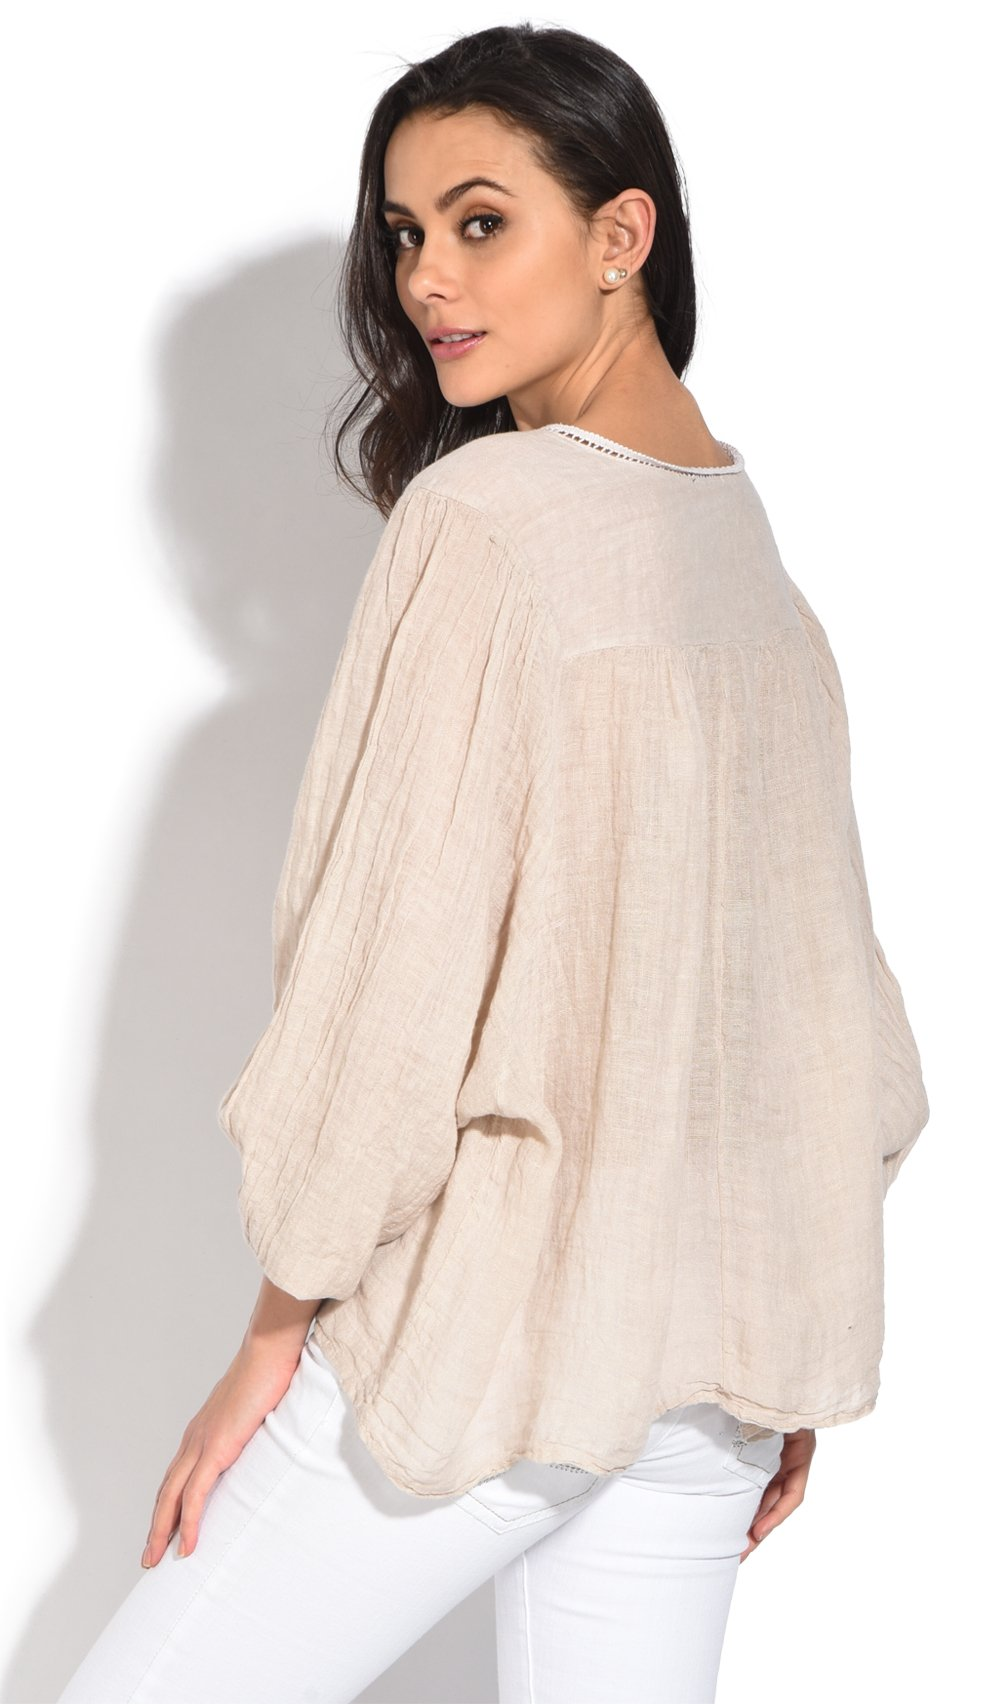 V-NECK TOP WITH LACE INSERT AND HALF-SLEEVES